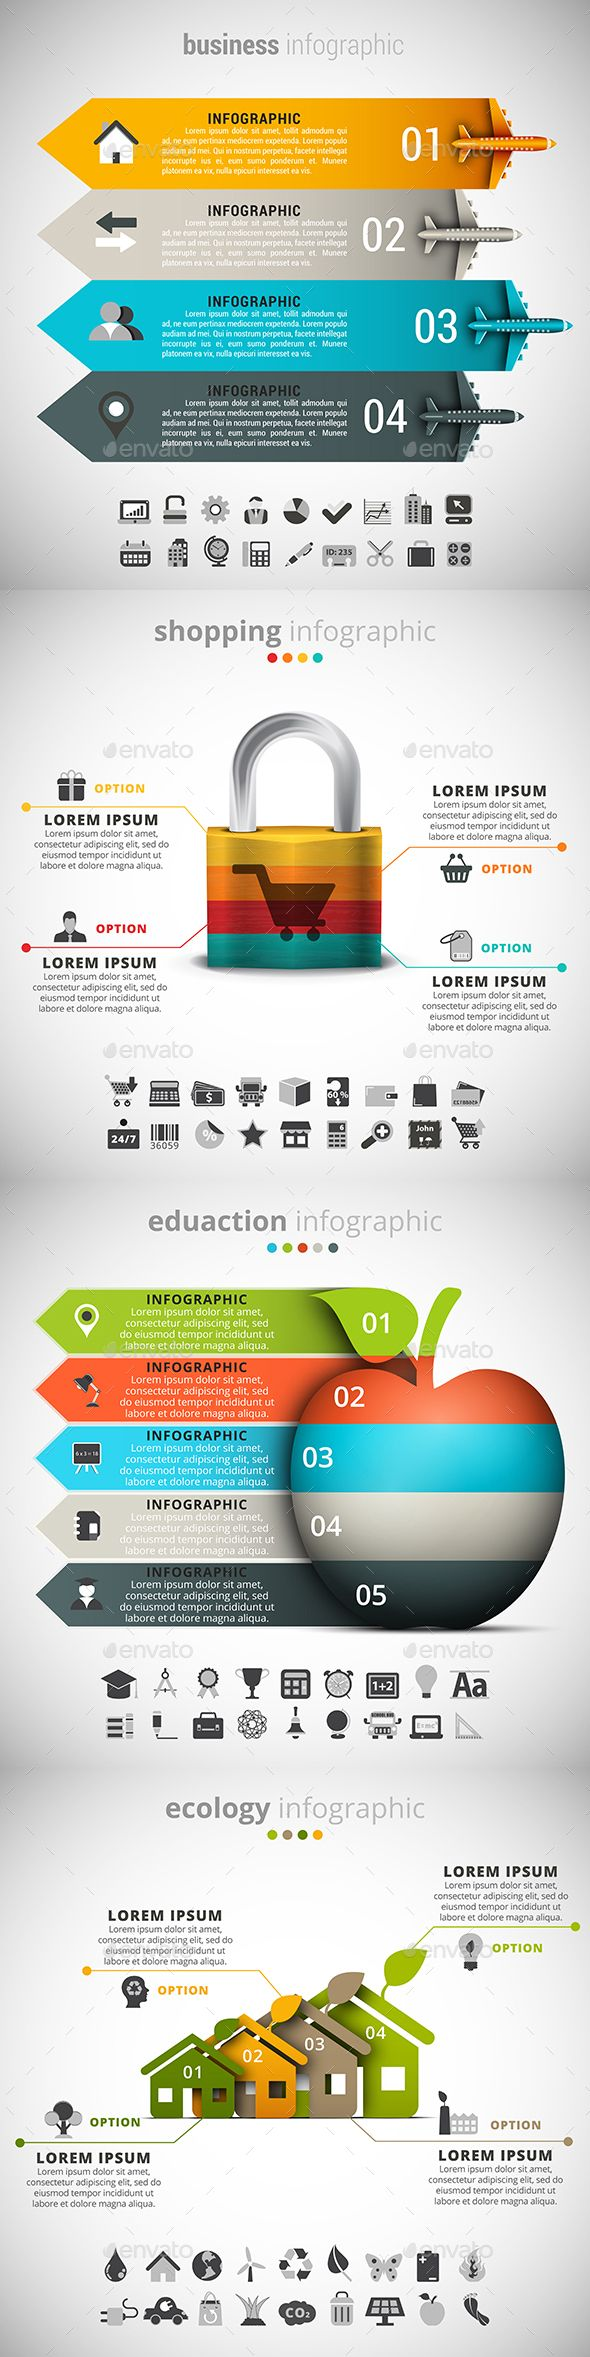 1625564638_466_Advertising-Infographics-notitle Advertising Infographics :